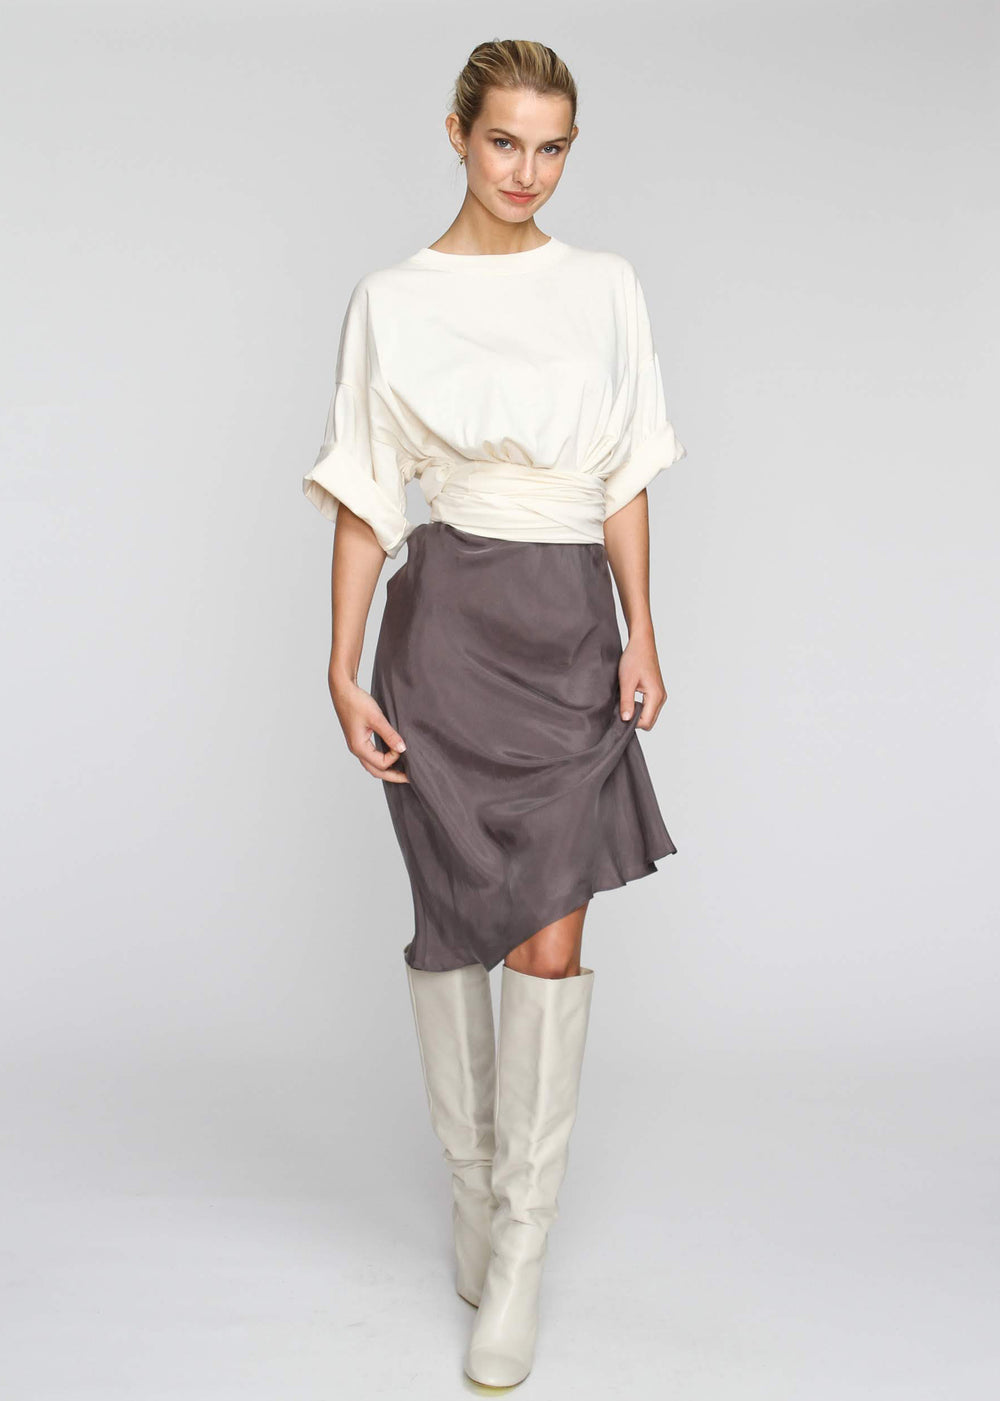 Slip Skirt - Dark Grey - The Frock NYC